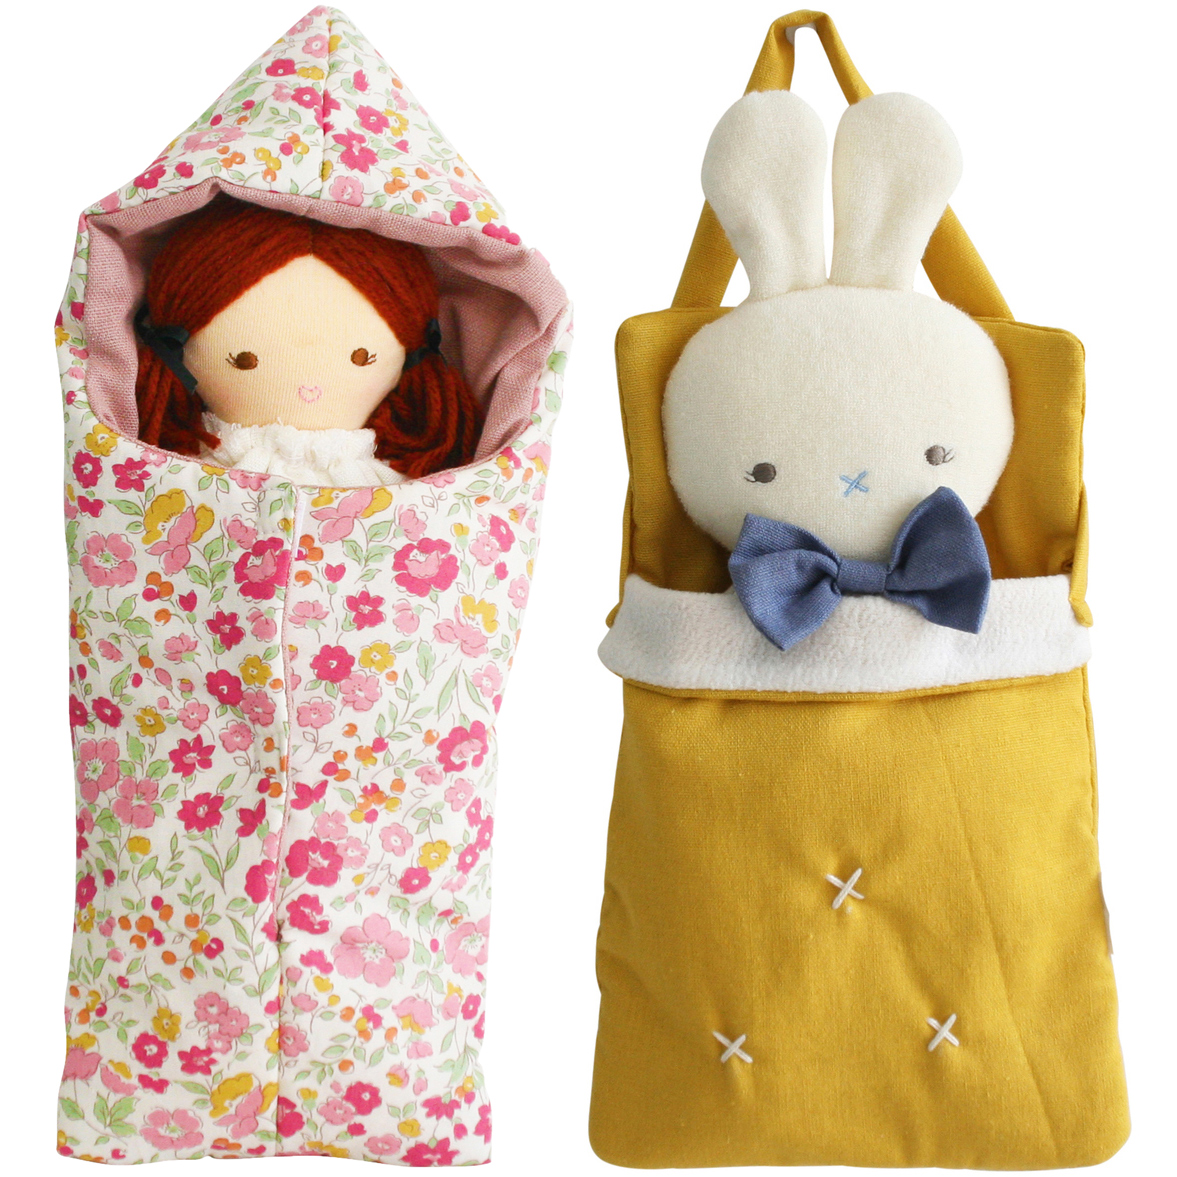 Asleep Awake Dolls & Carriers